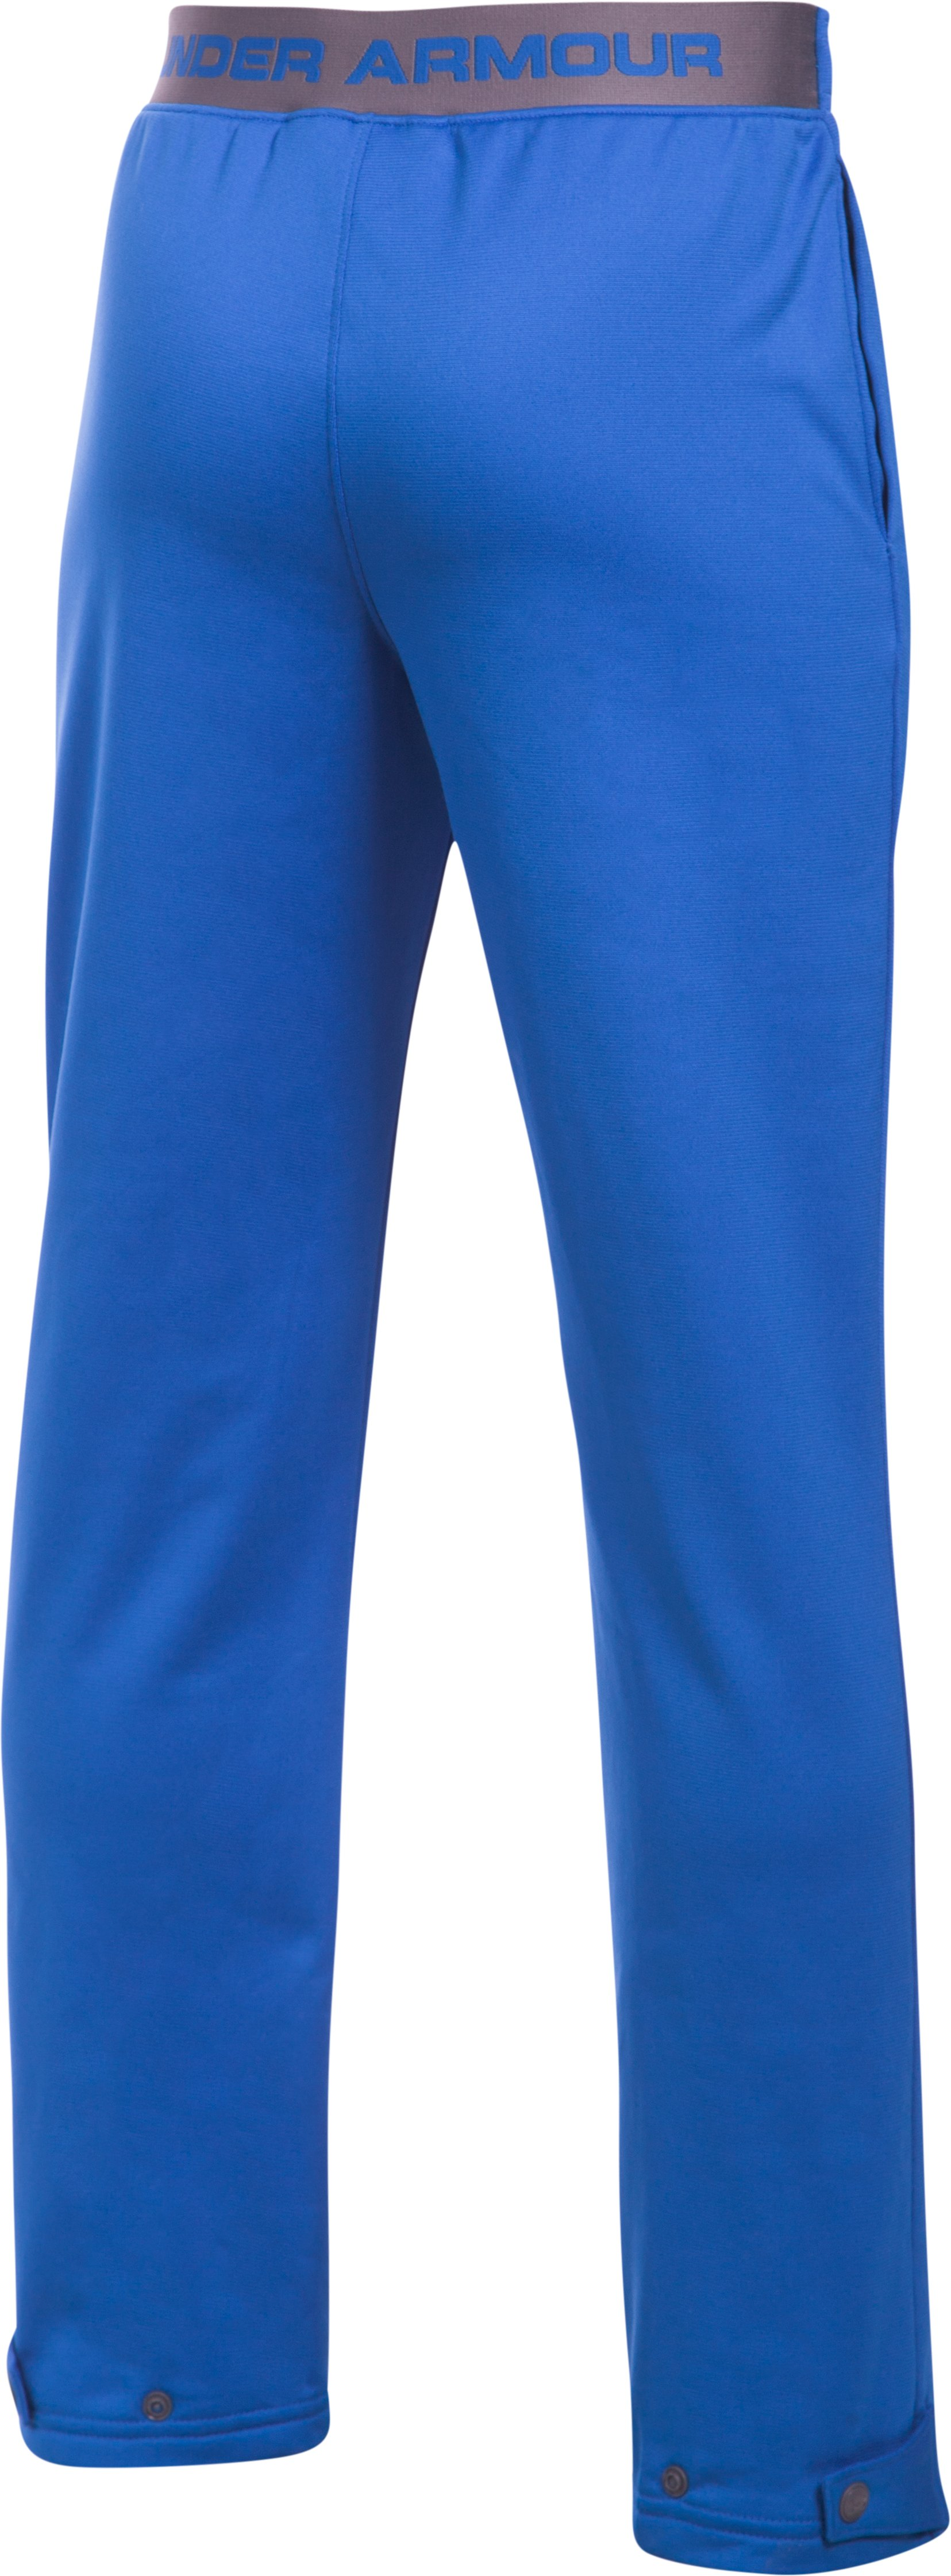 Boys' UA Brawler Slim Pants, ULTRA BLUE,